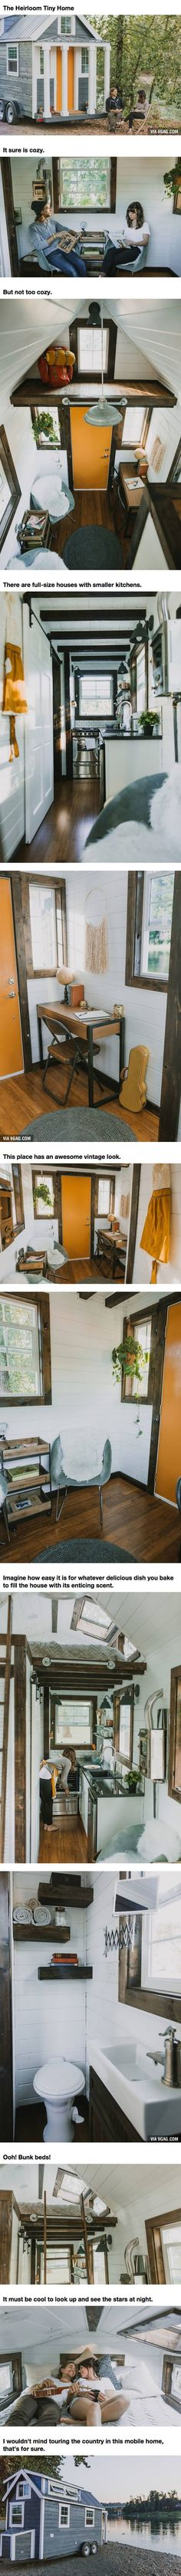 This Cozy And Custom Mobile Home Is Exactly What Campers' Dreams Are Made Of